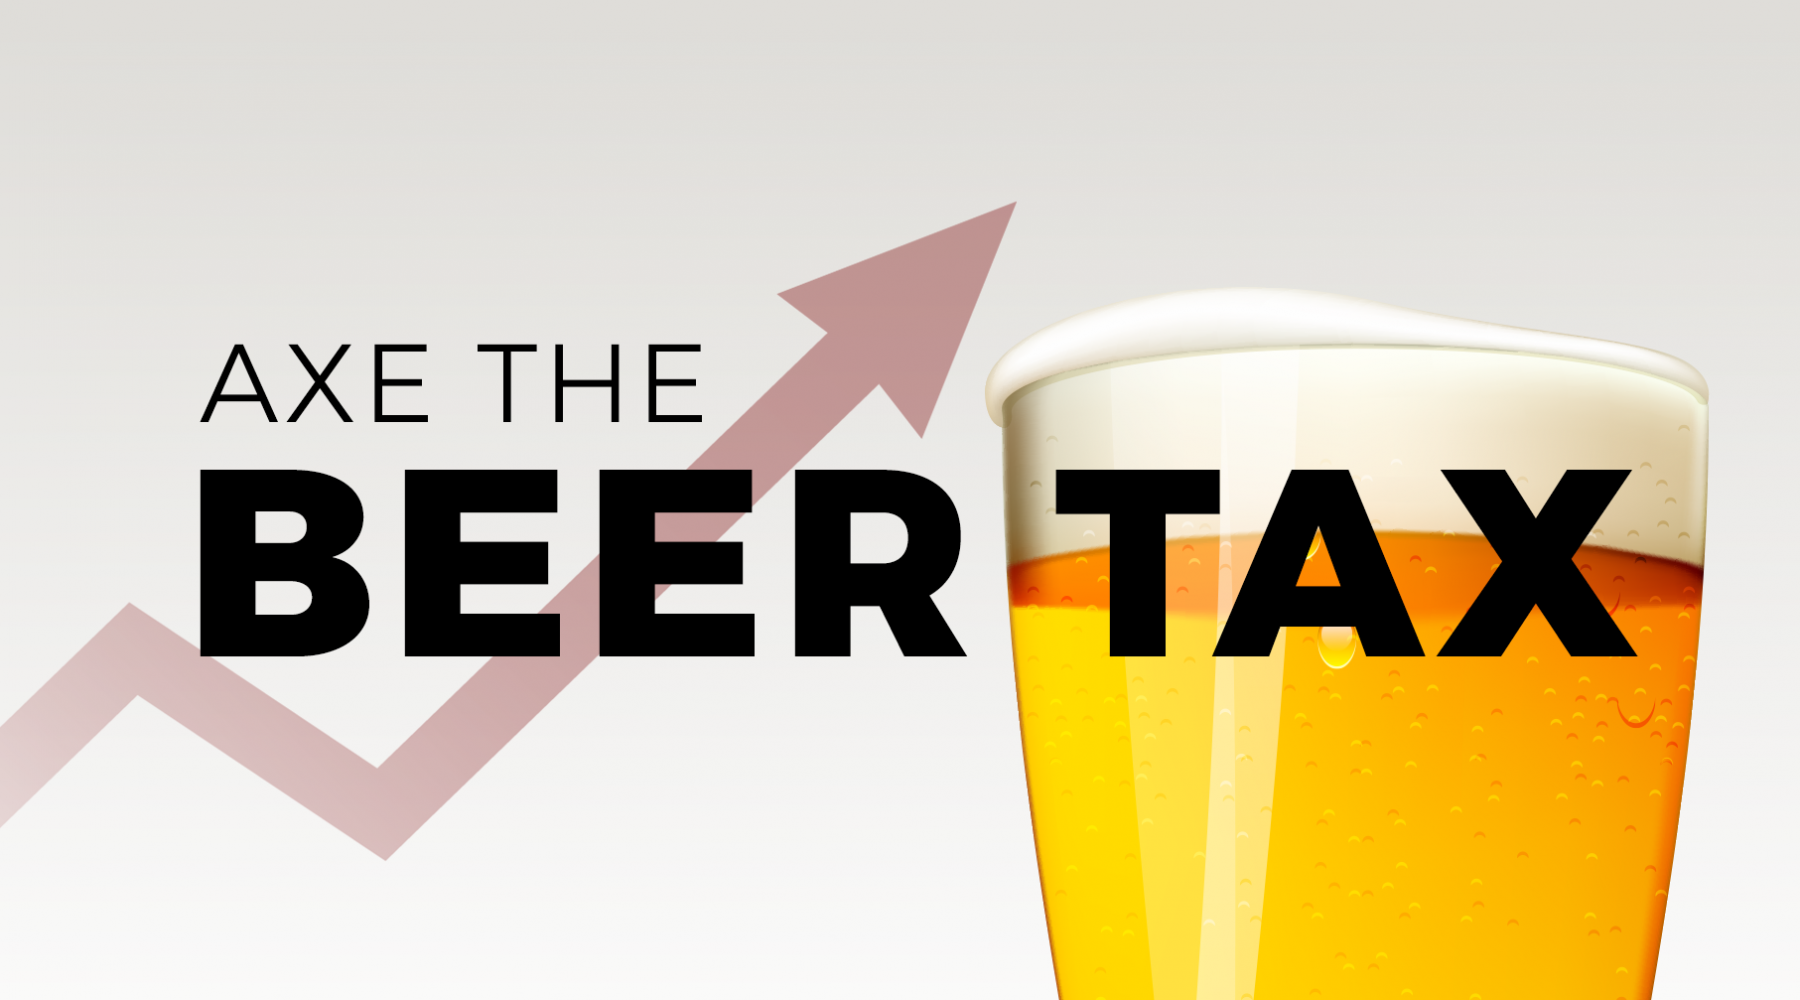 Beer Lovers, Sign The Axe The Beer Tax Petition